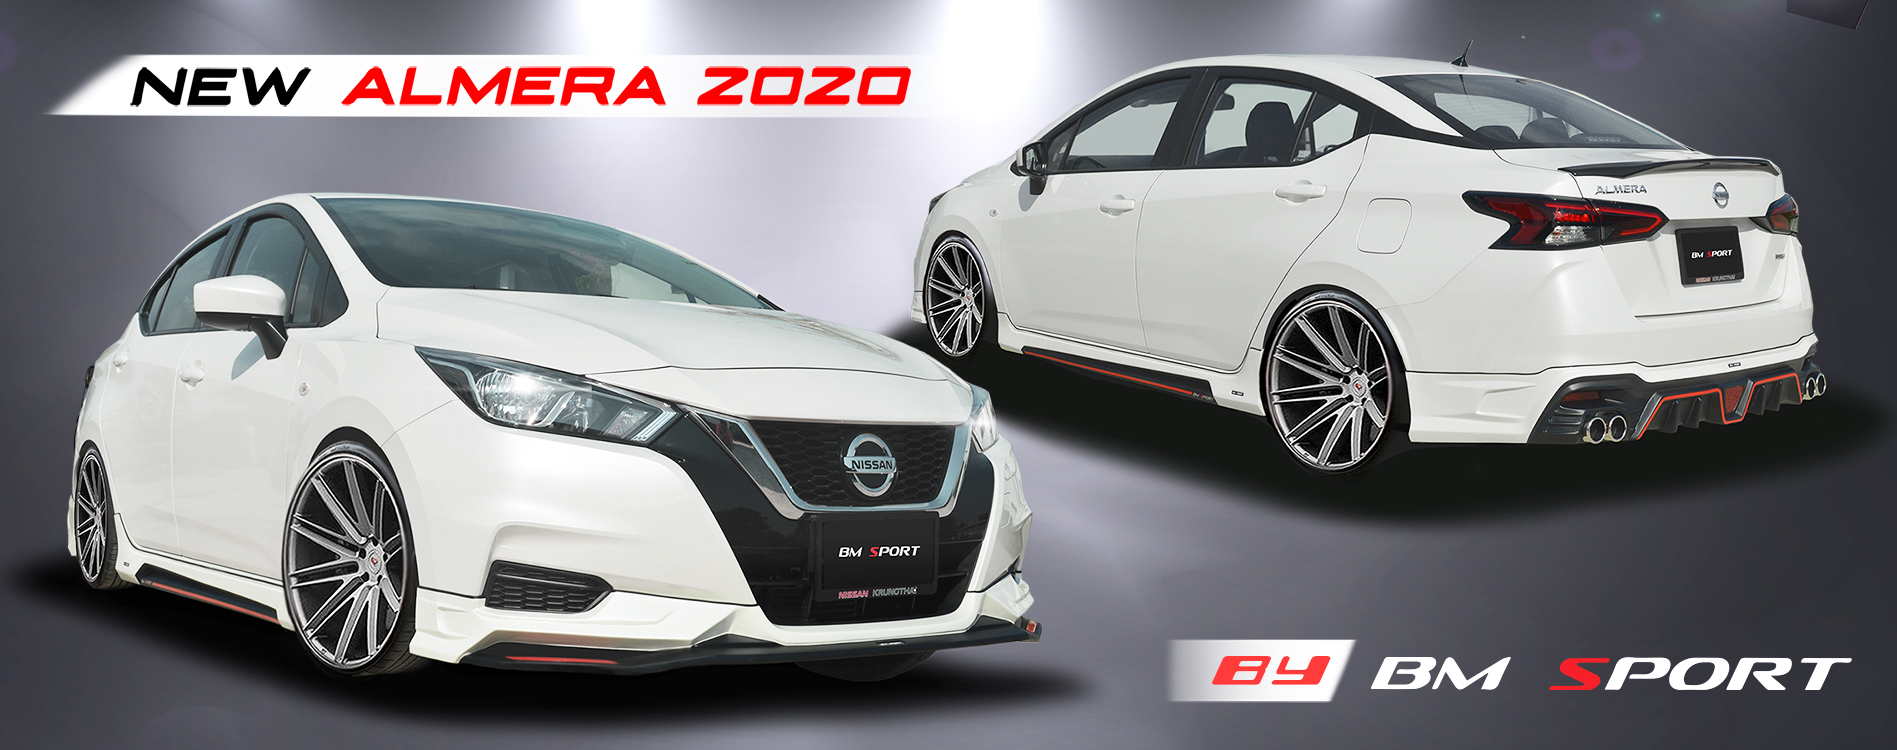 ALL NEW  ALMERA TURBO 2020